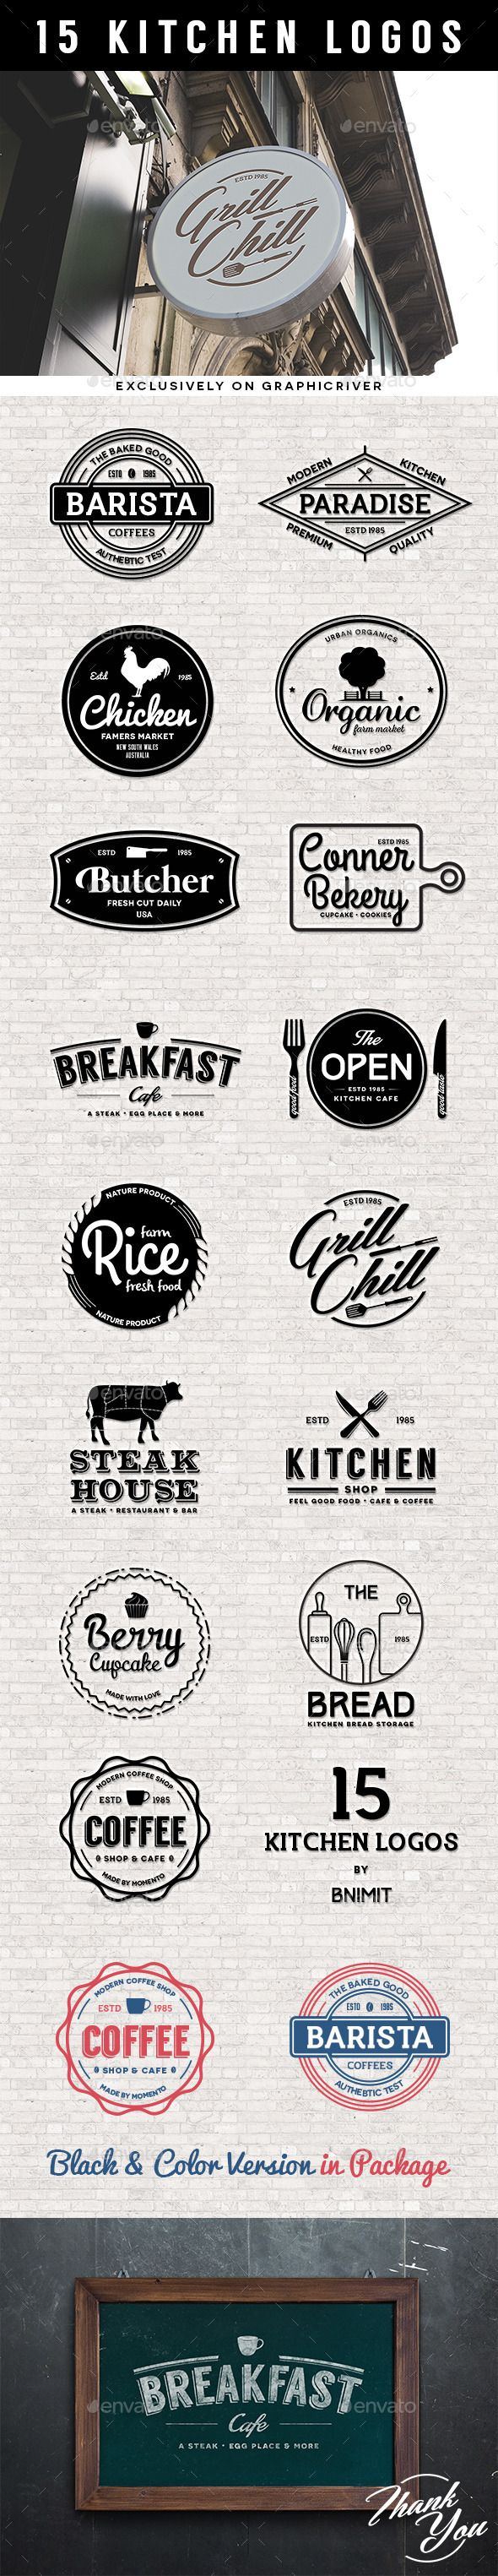 15 Kitchen logos #logos #design Download: http://graphicriver.net/item/15-kitchen-logos/10889428?ref=ksioks